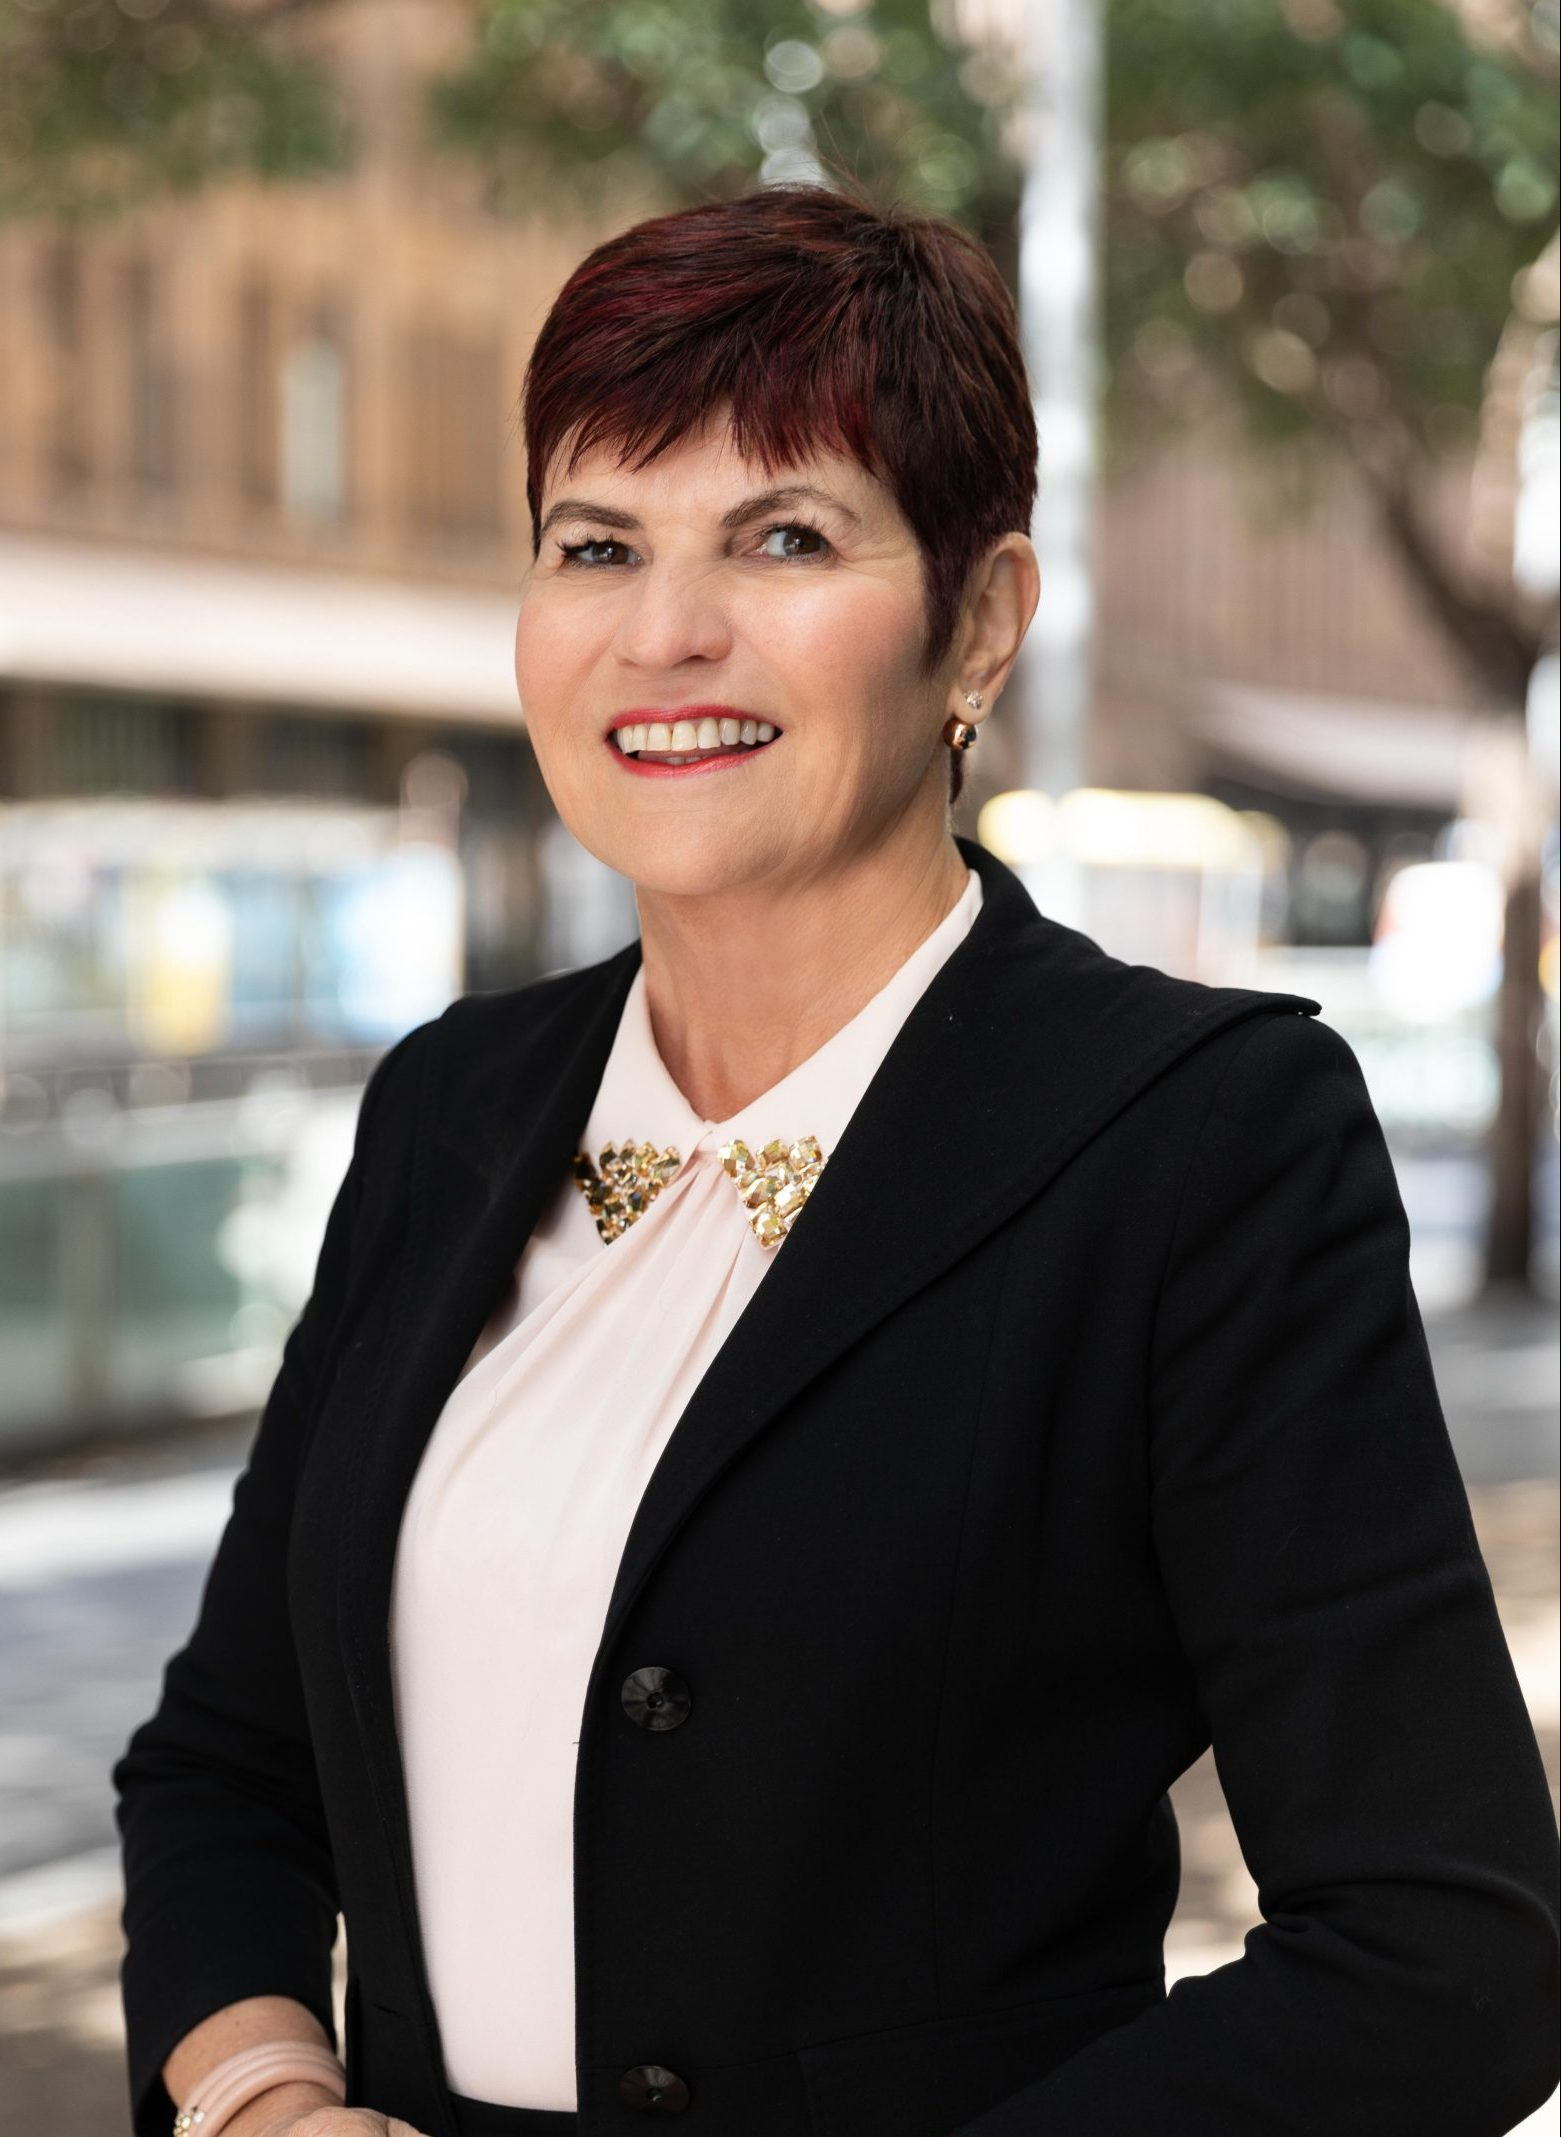 The Hon. Robyn Parker